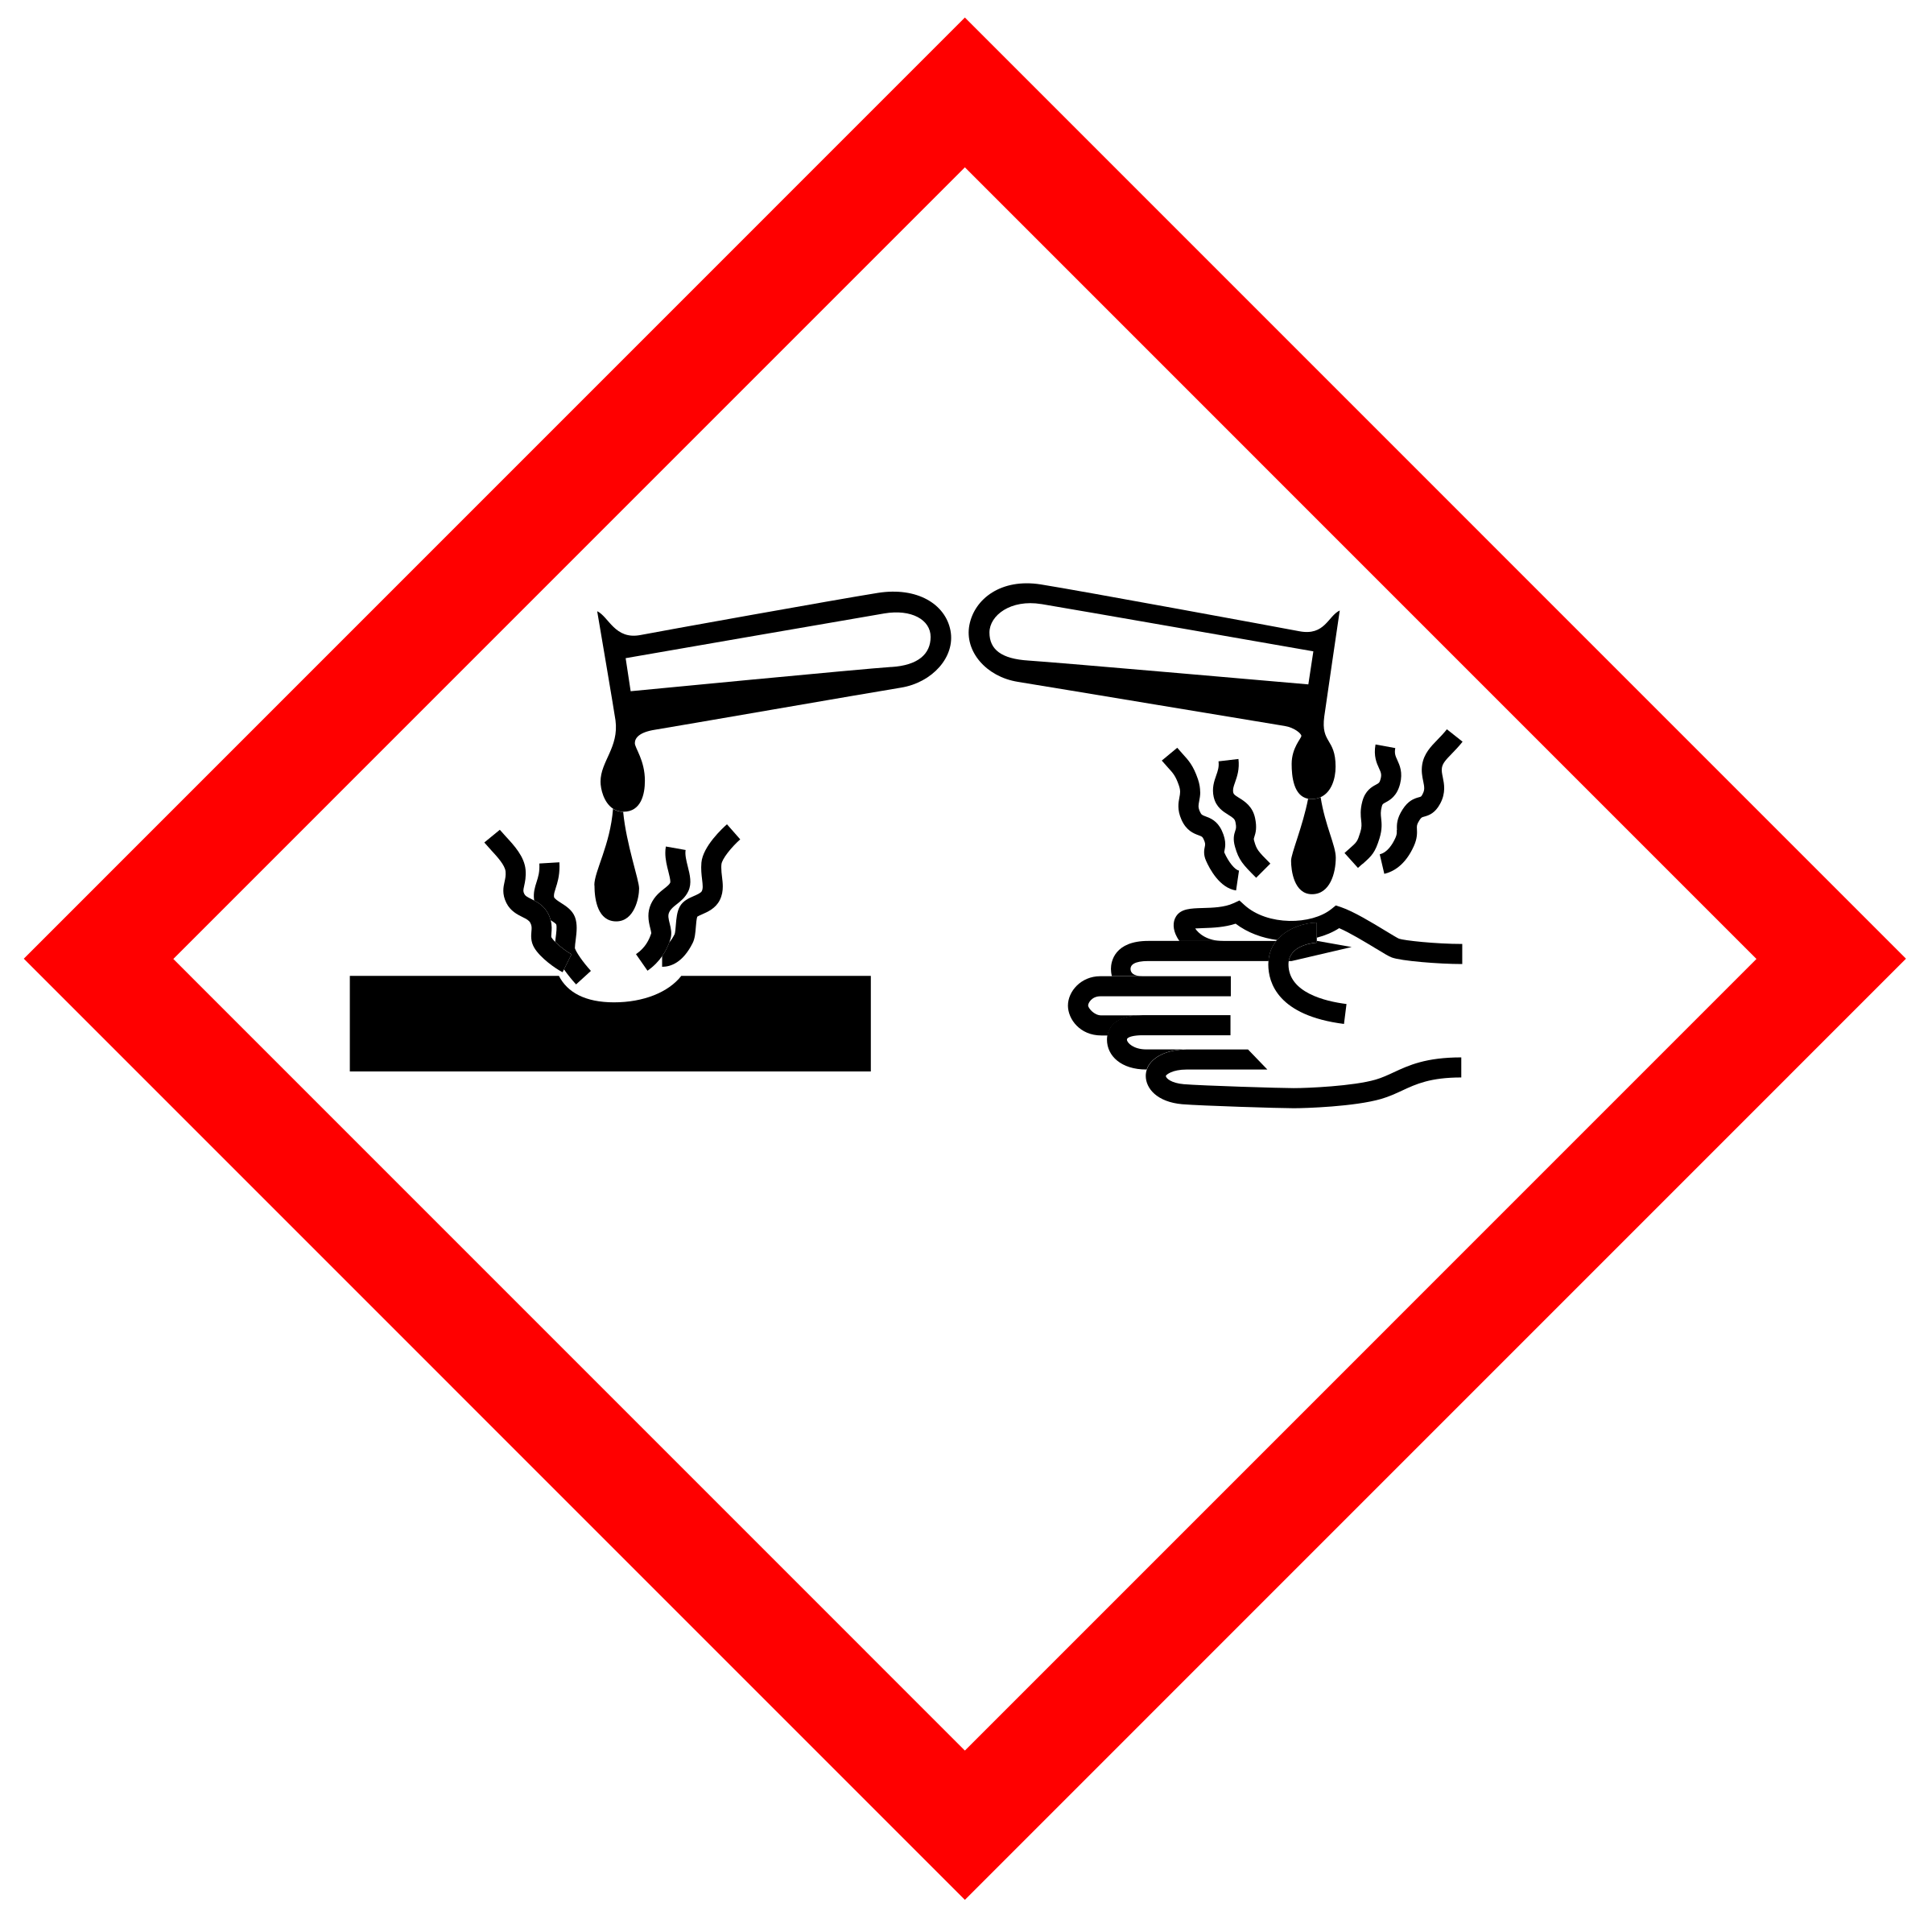 GHS pictogram for corrosive substances by Juhele